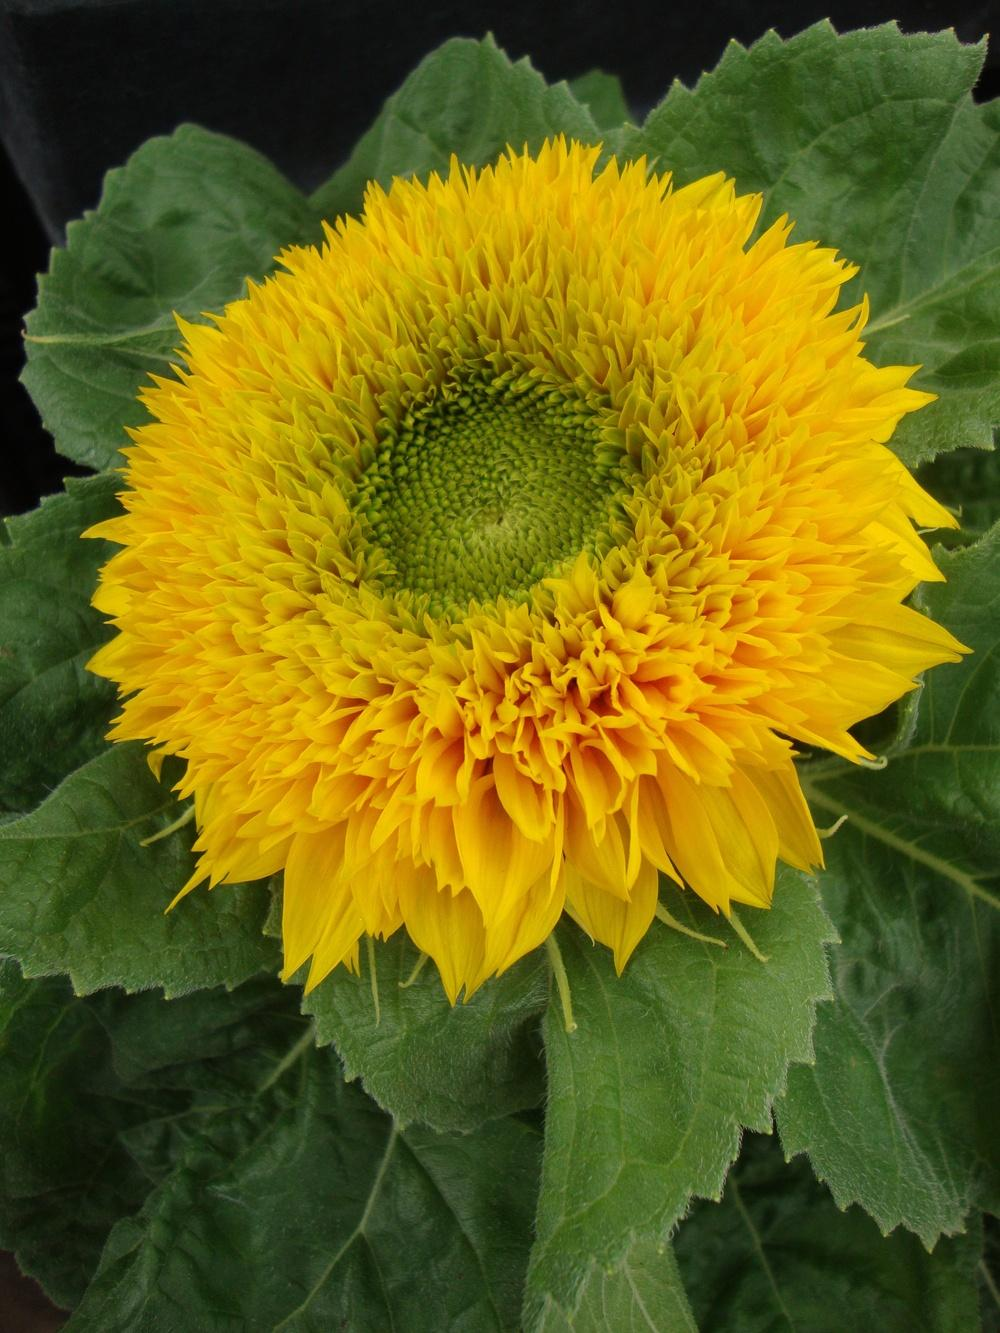 Photo of Sunflower (Helianthus annuus 'Teddy Bear') uploaded by Paul2032